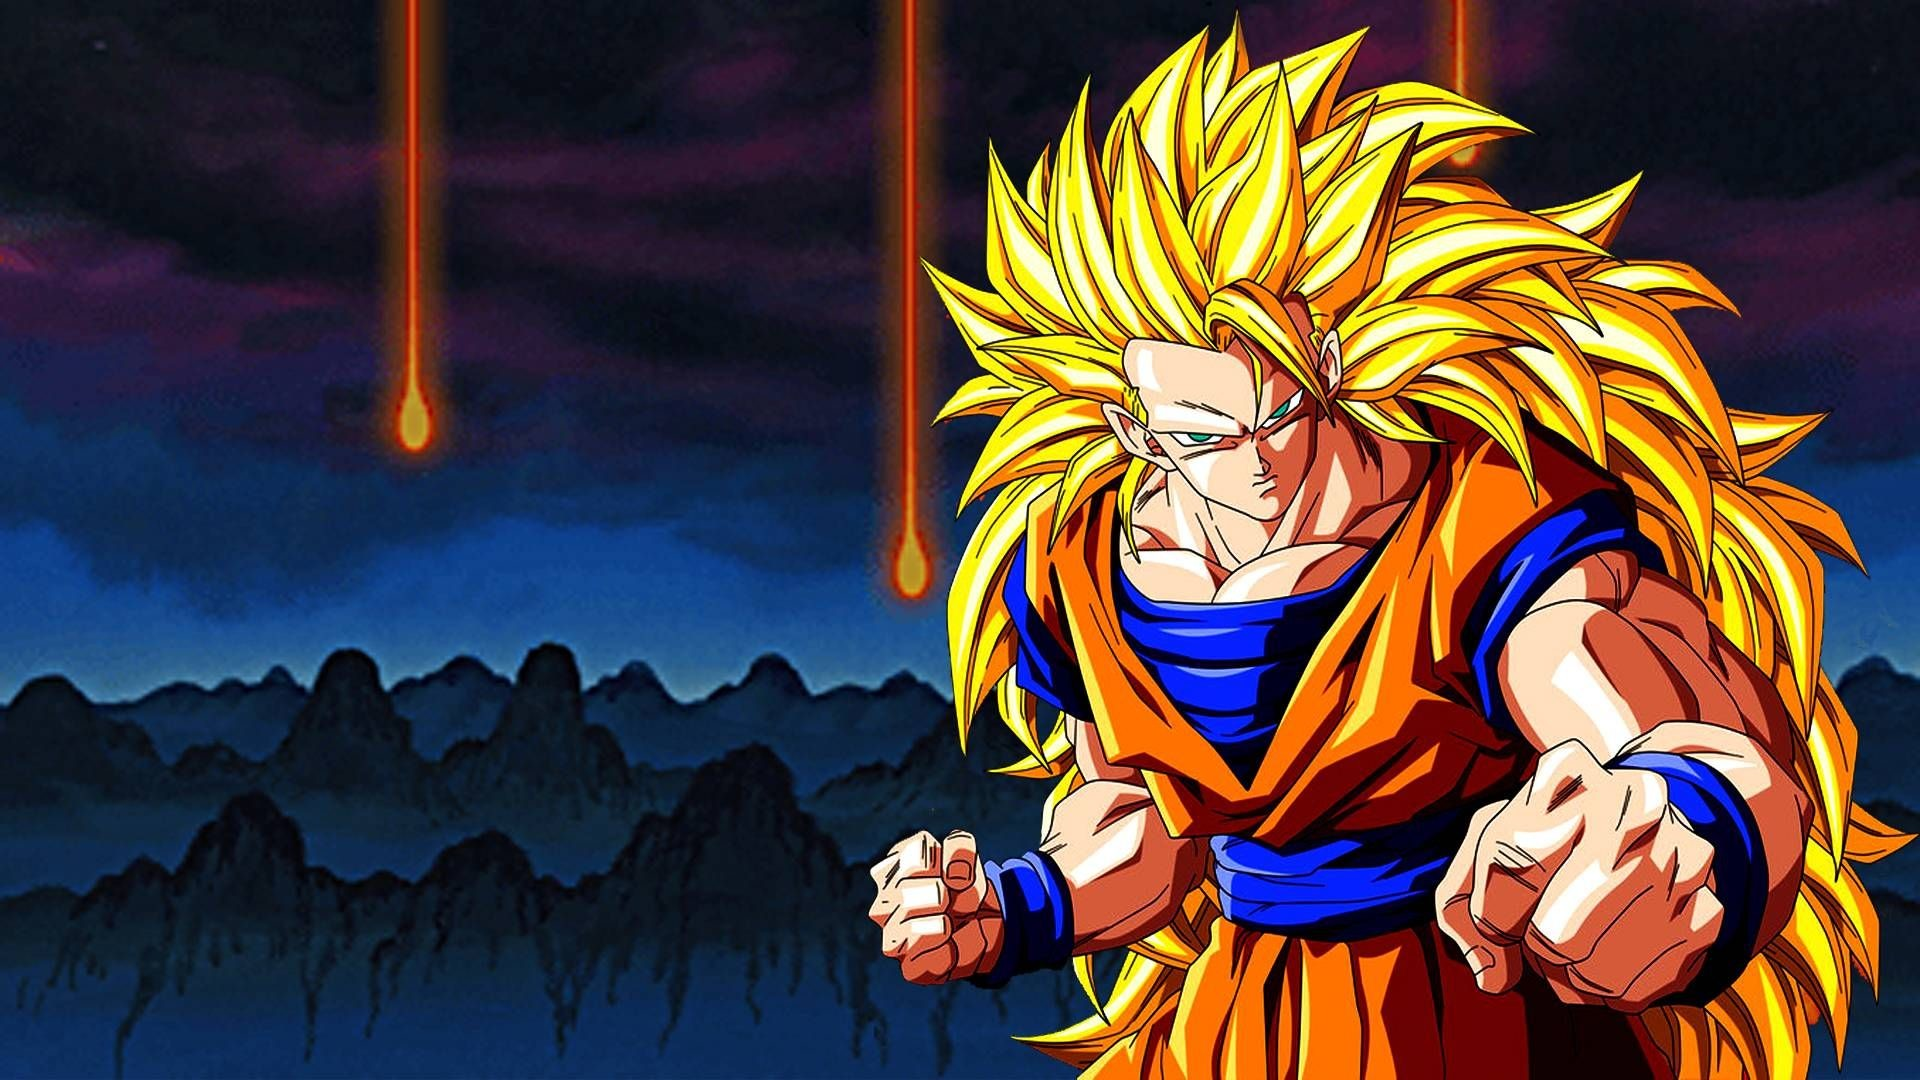 Dragon Ball Z Goku Wallpaper 4k Gambarku